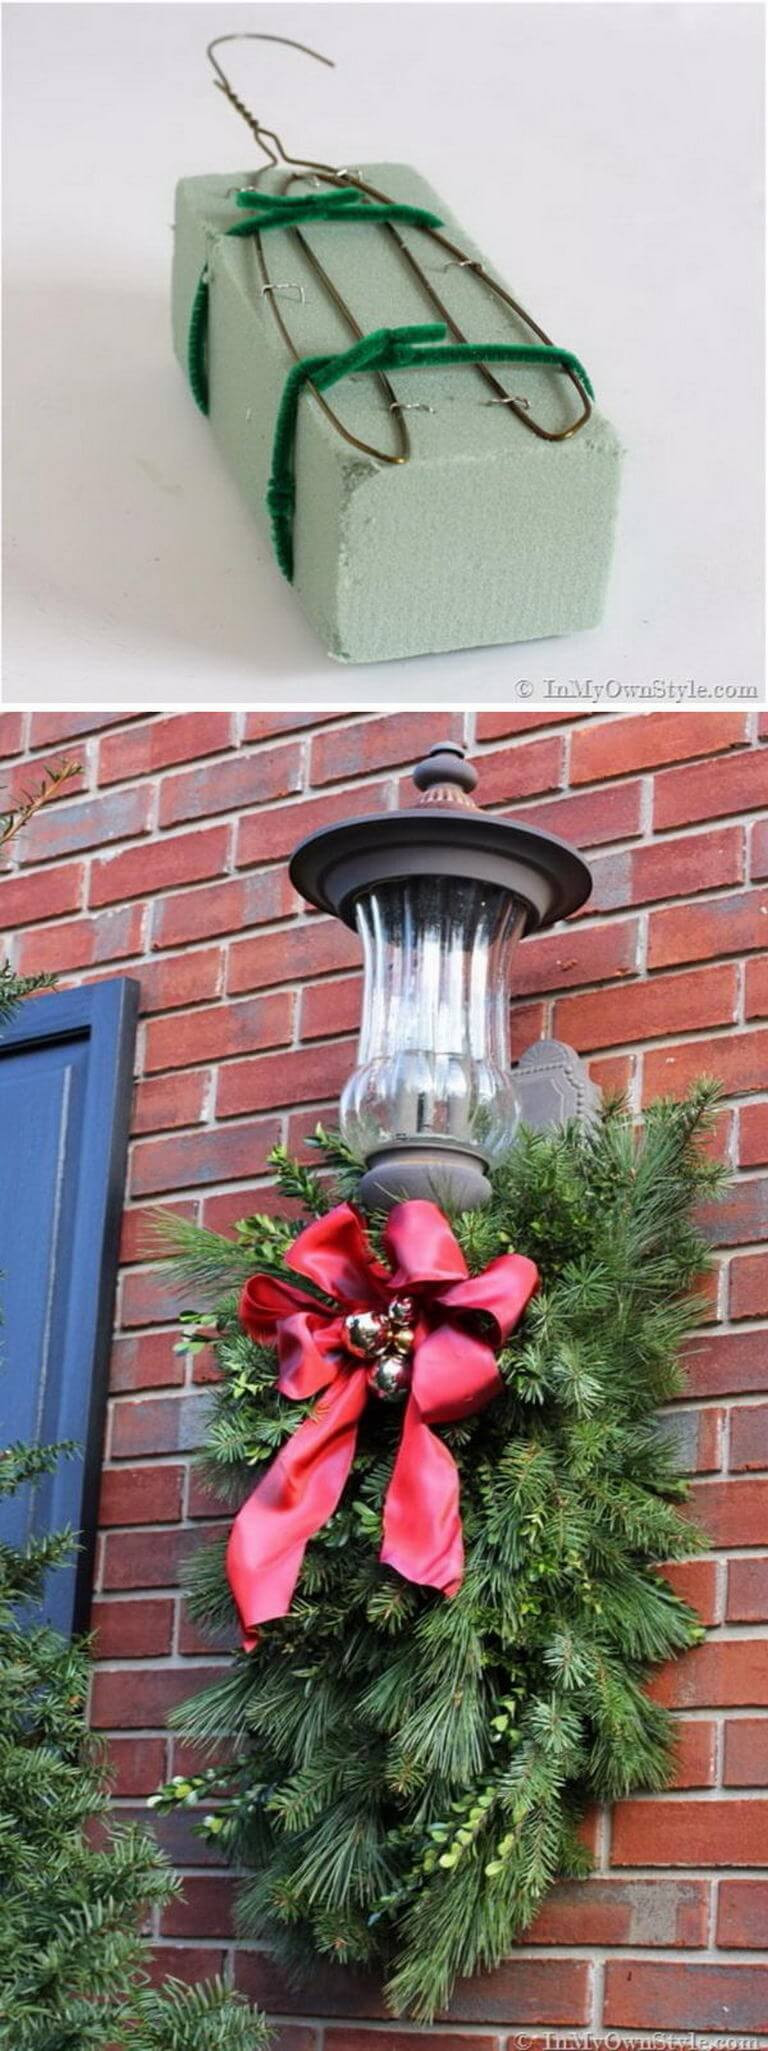 Best ideas about Christmas DIY Decoration Ideas . Save or Pin 35 Best Christmas DIY Outdoor Decor Ideas and Designs for Now.